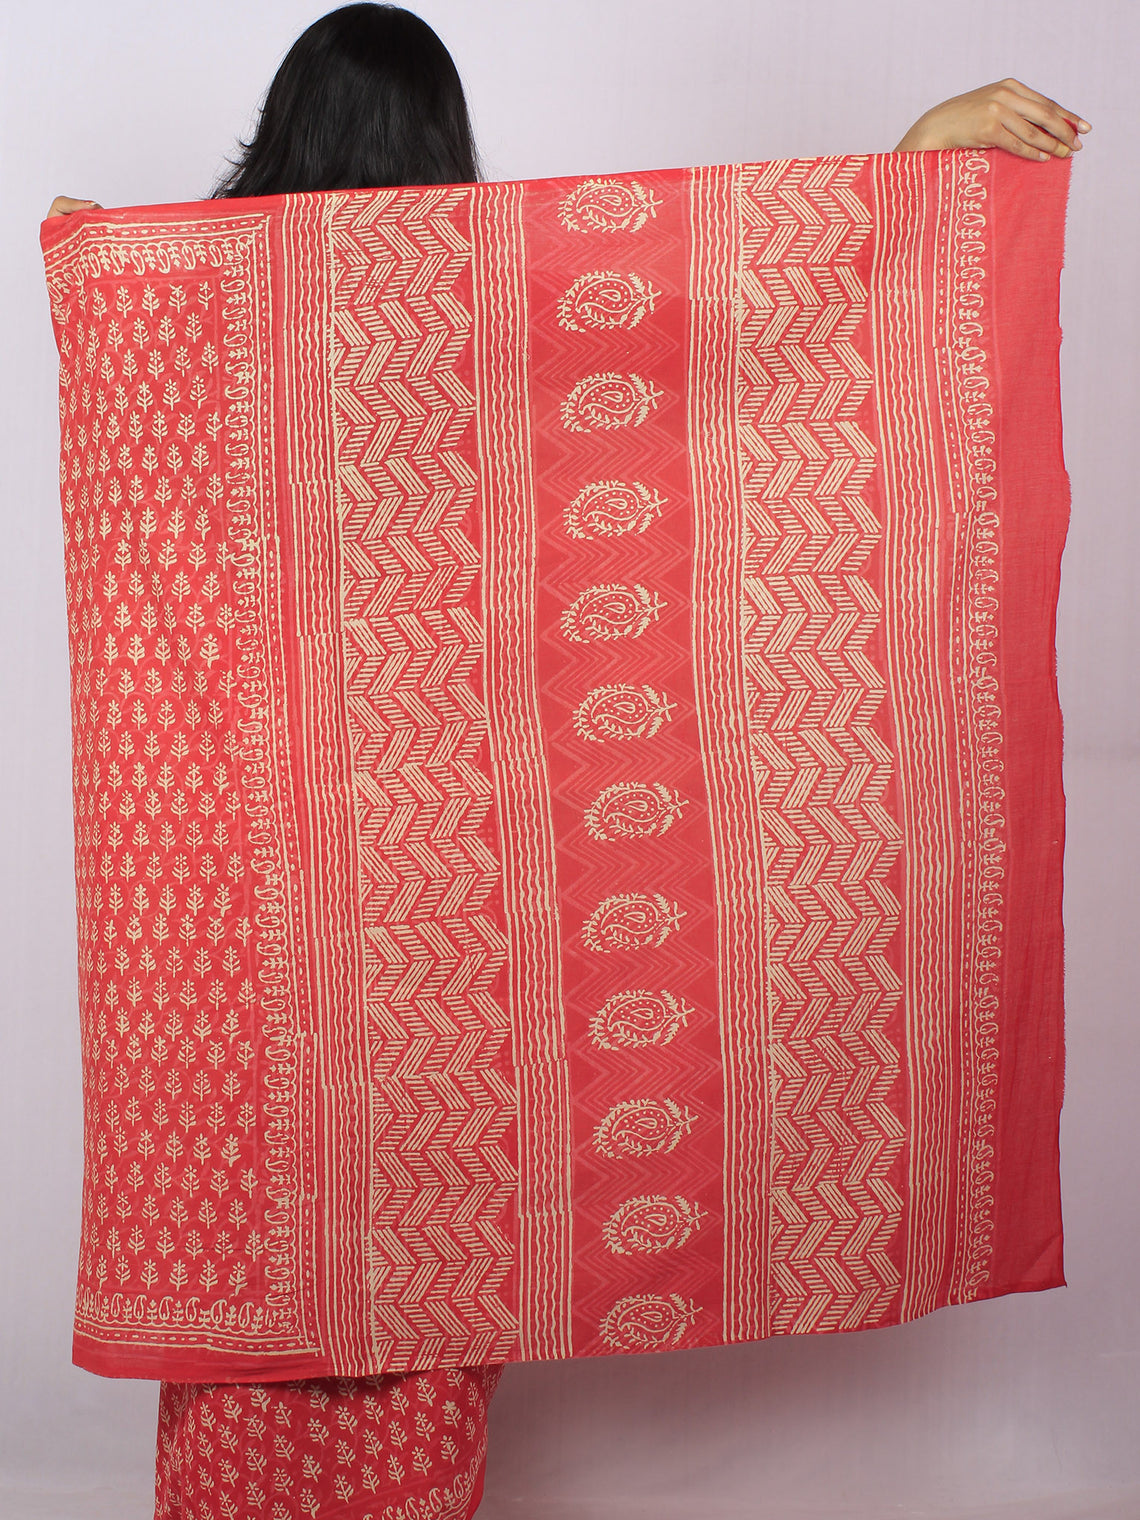 Sacrlet Red Pink Beige Hand Block Printed Cotton Saree in Natural Colors - S03170818